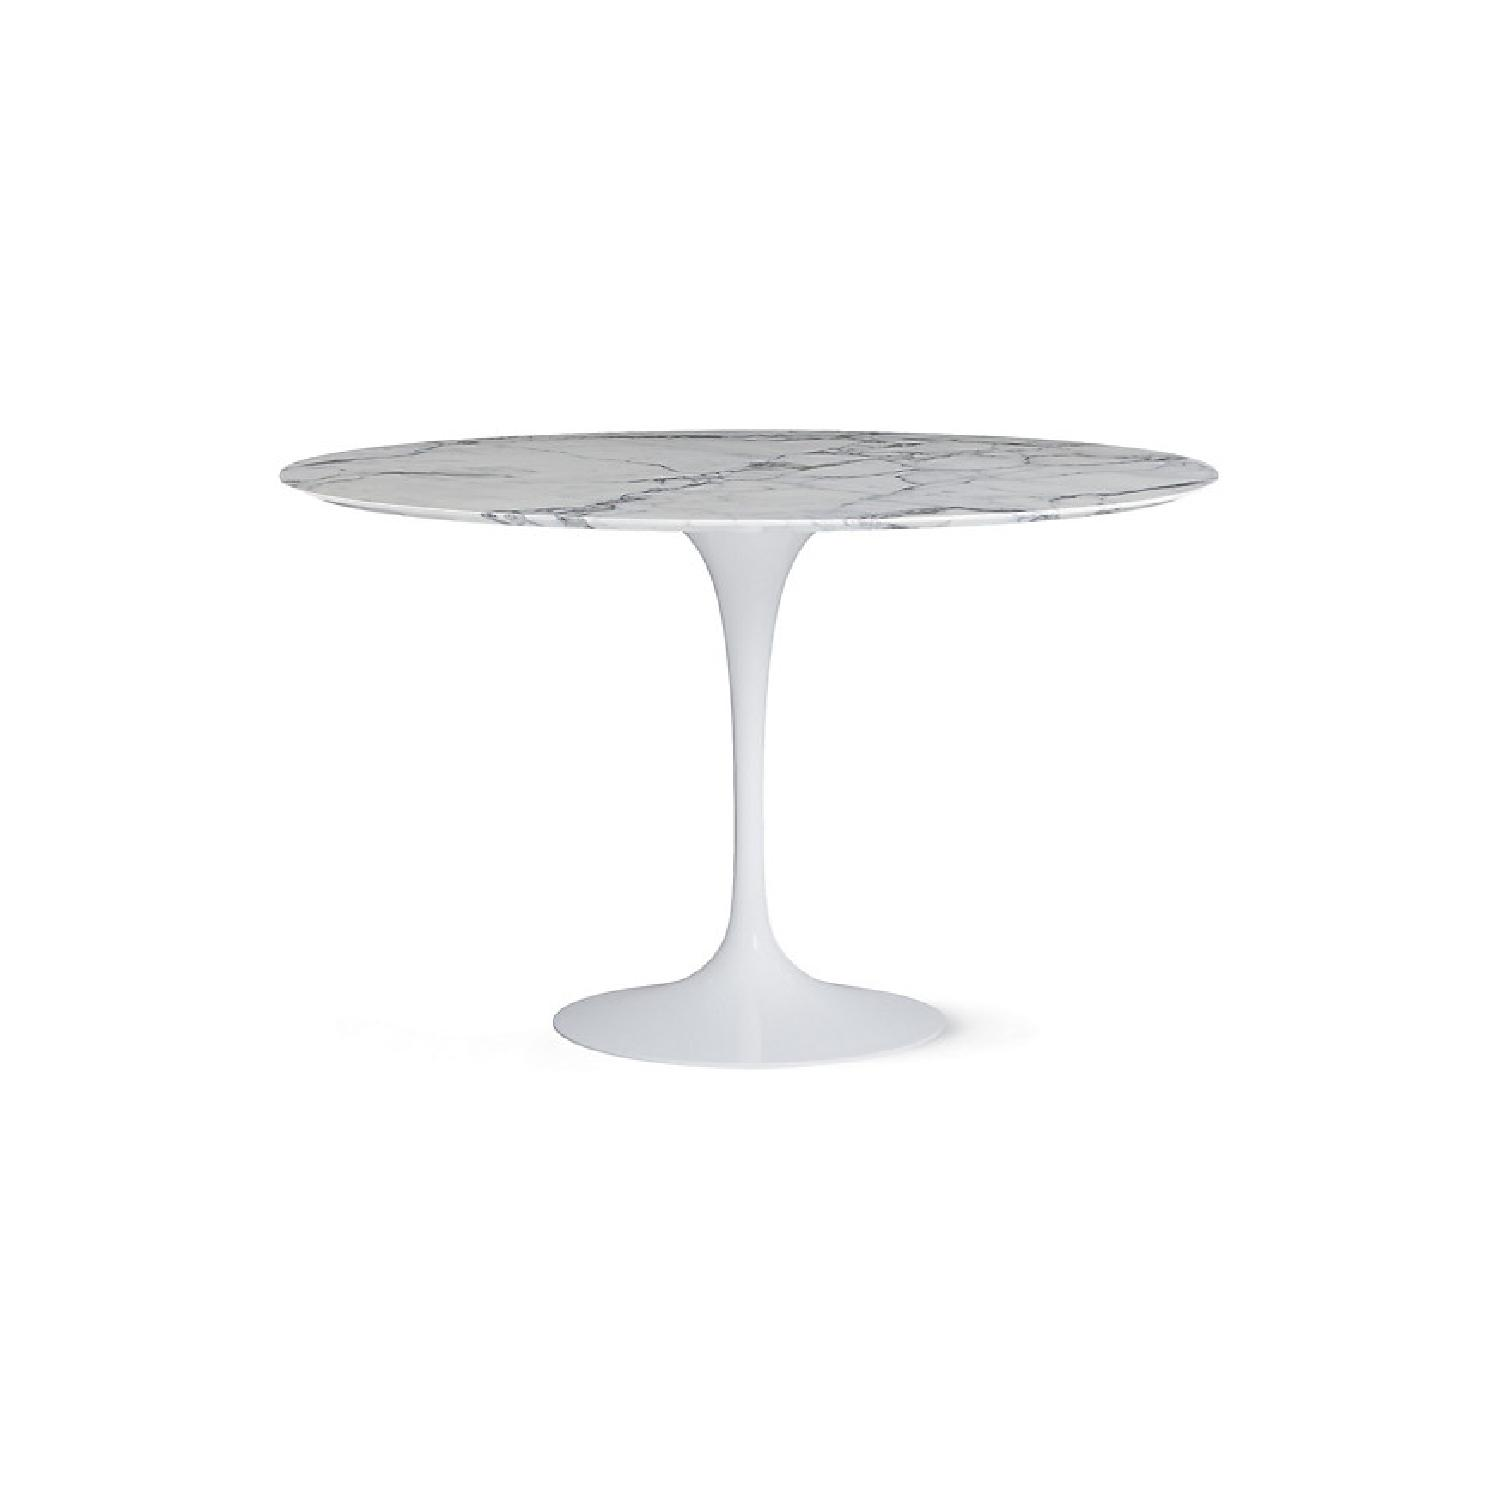 White Marble - Saarinen Round Dining Table - image-0